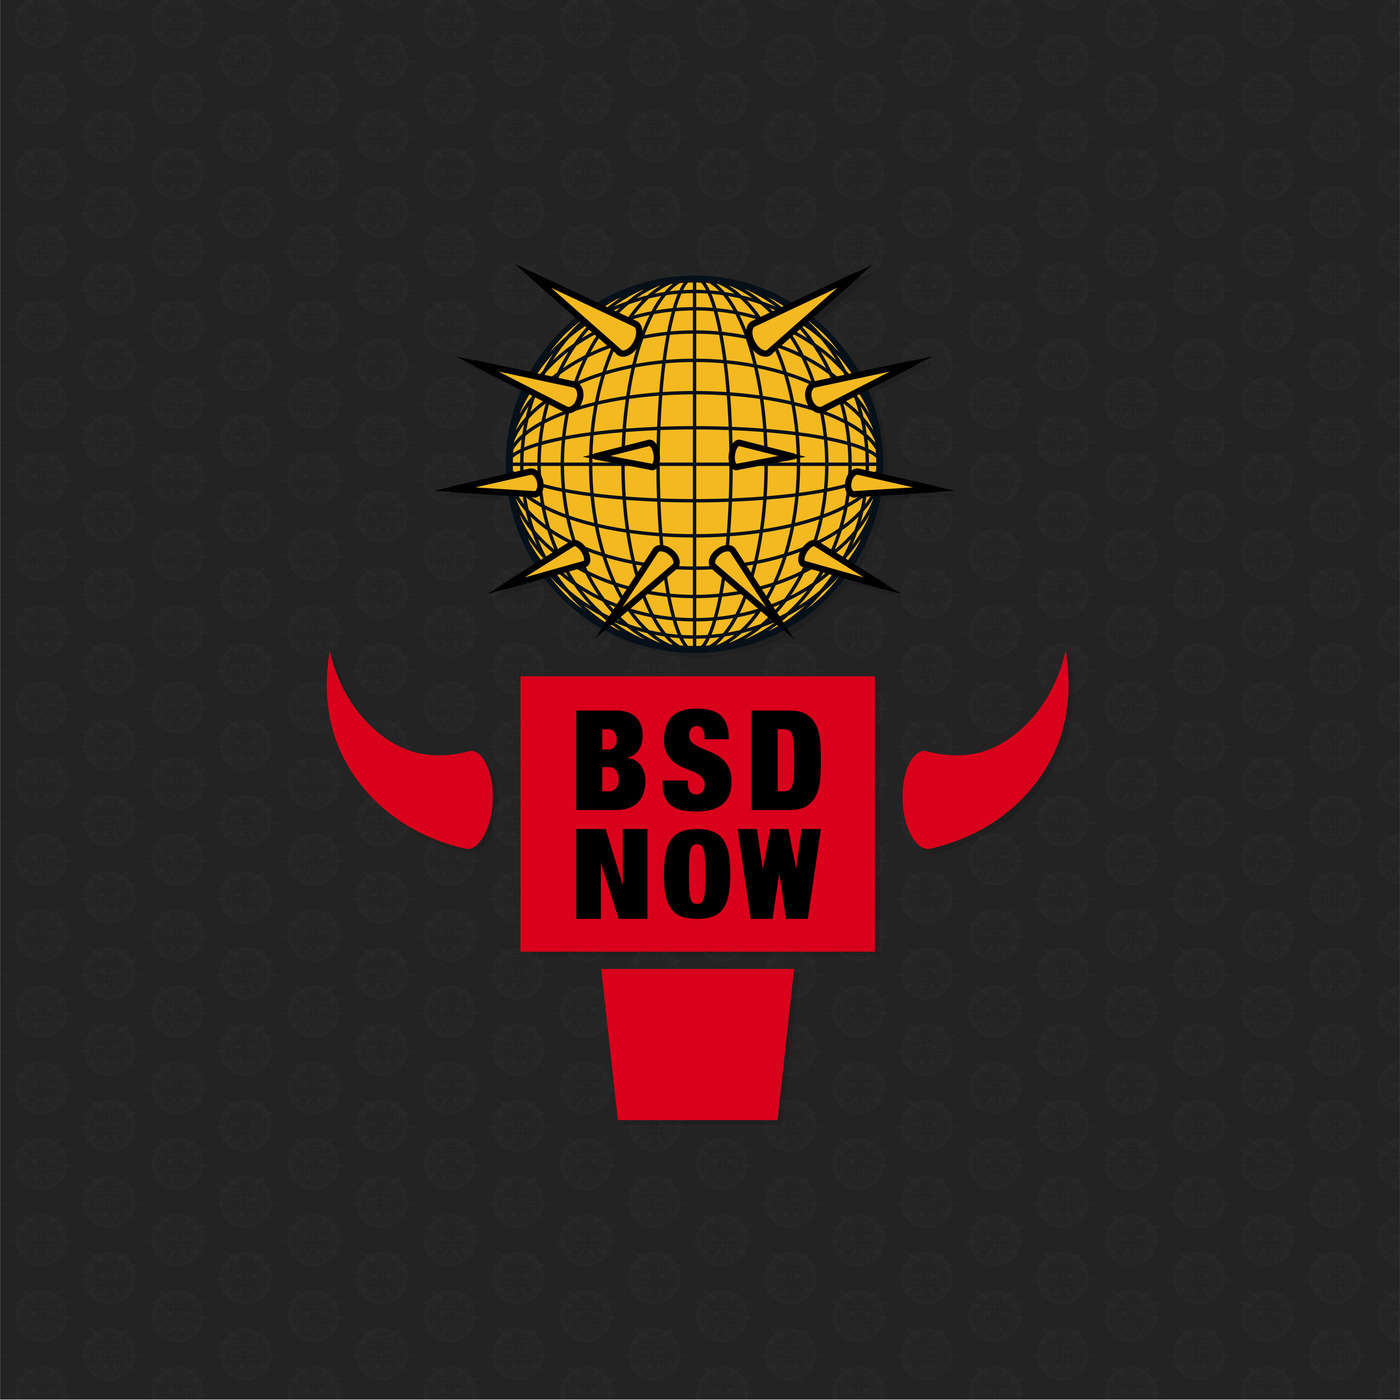 The BSD Now logo